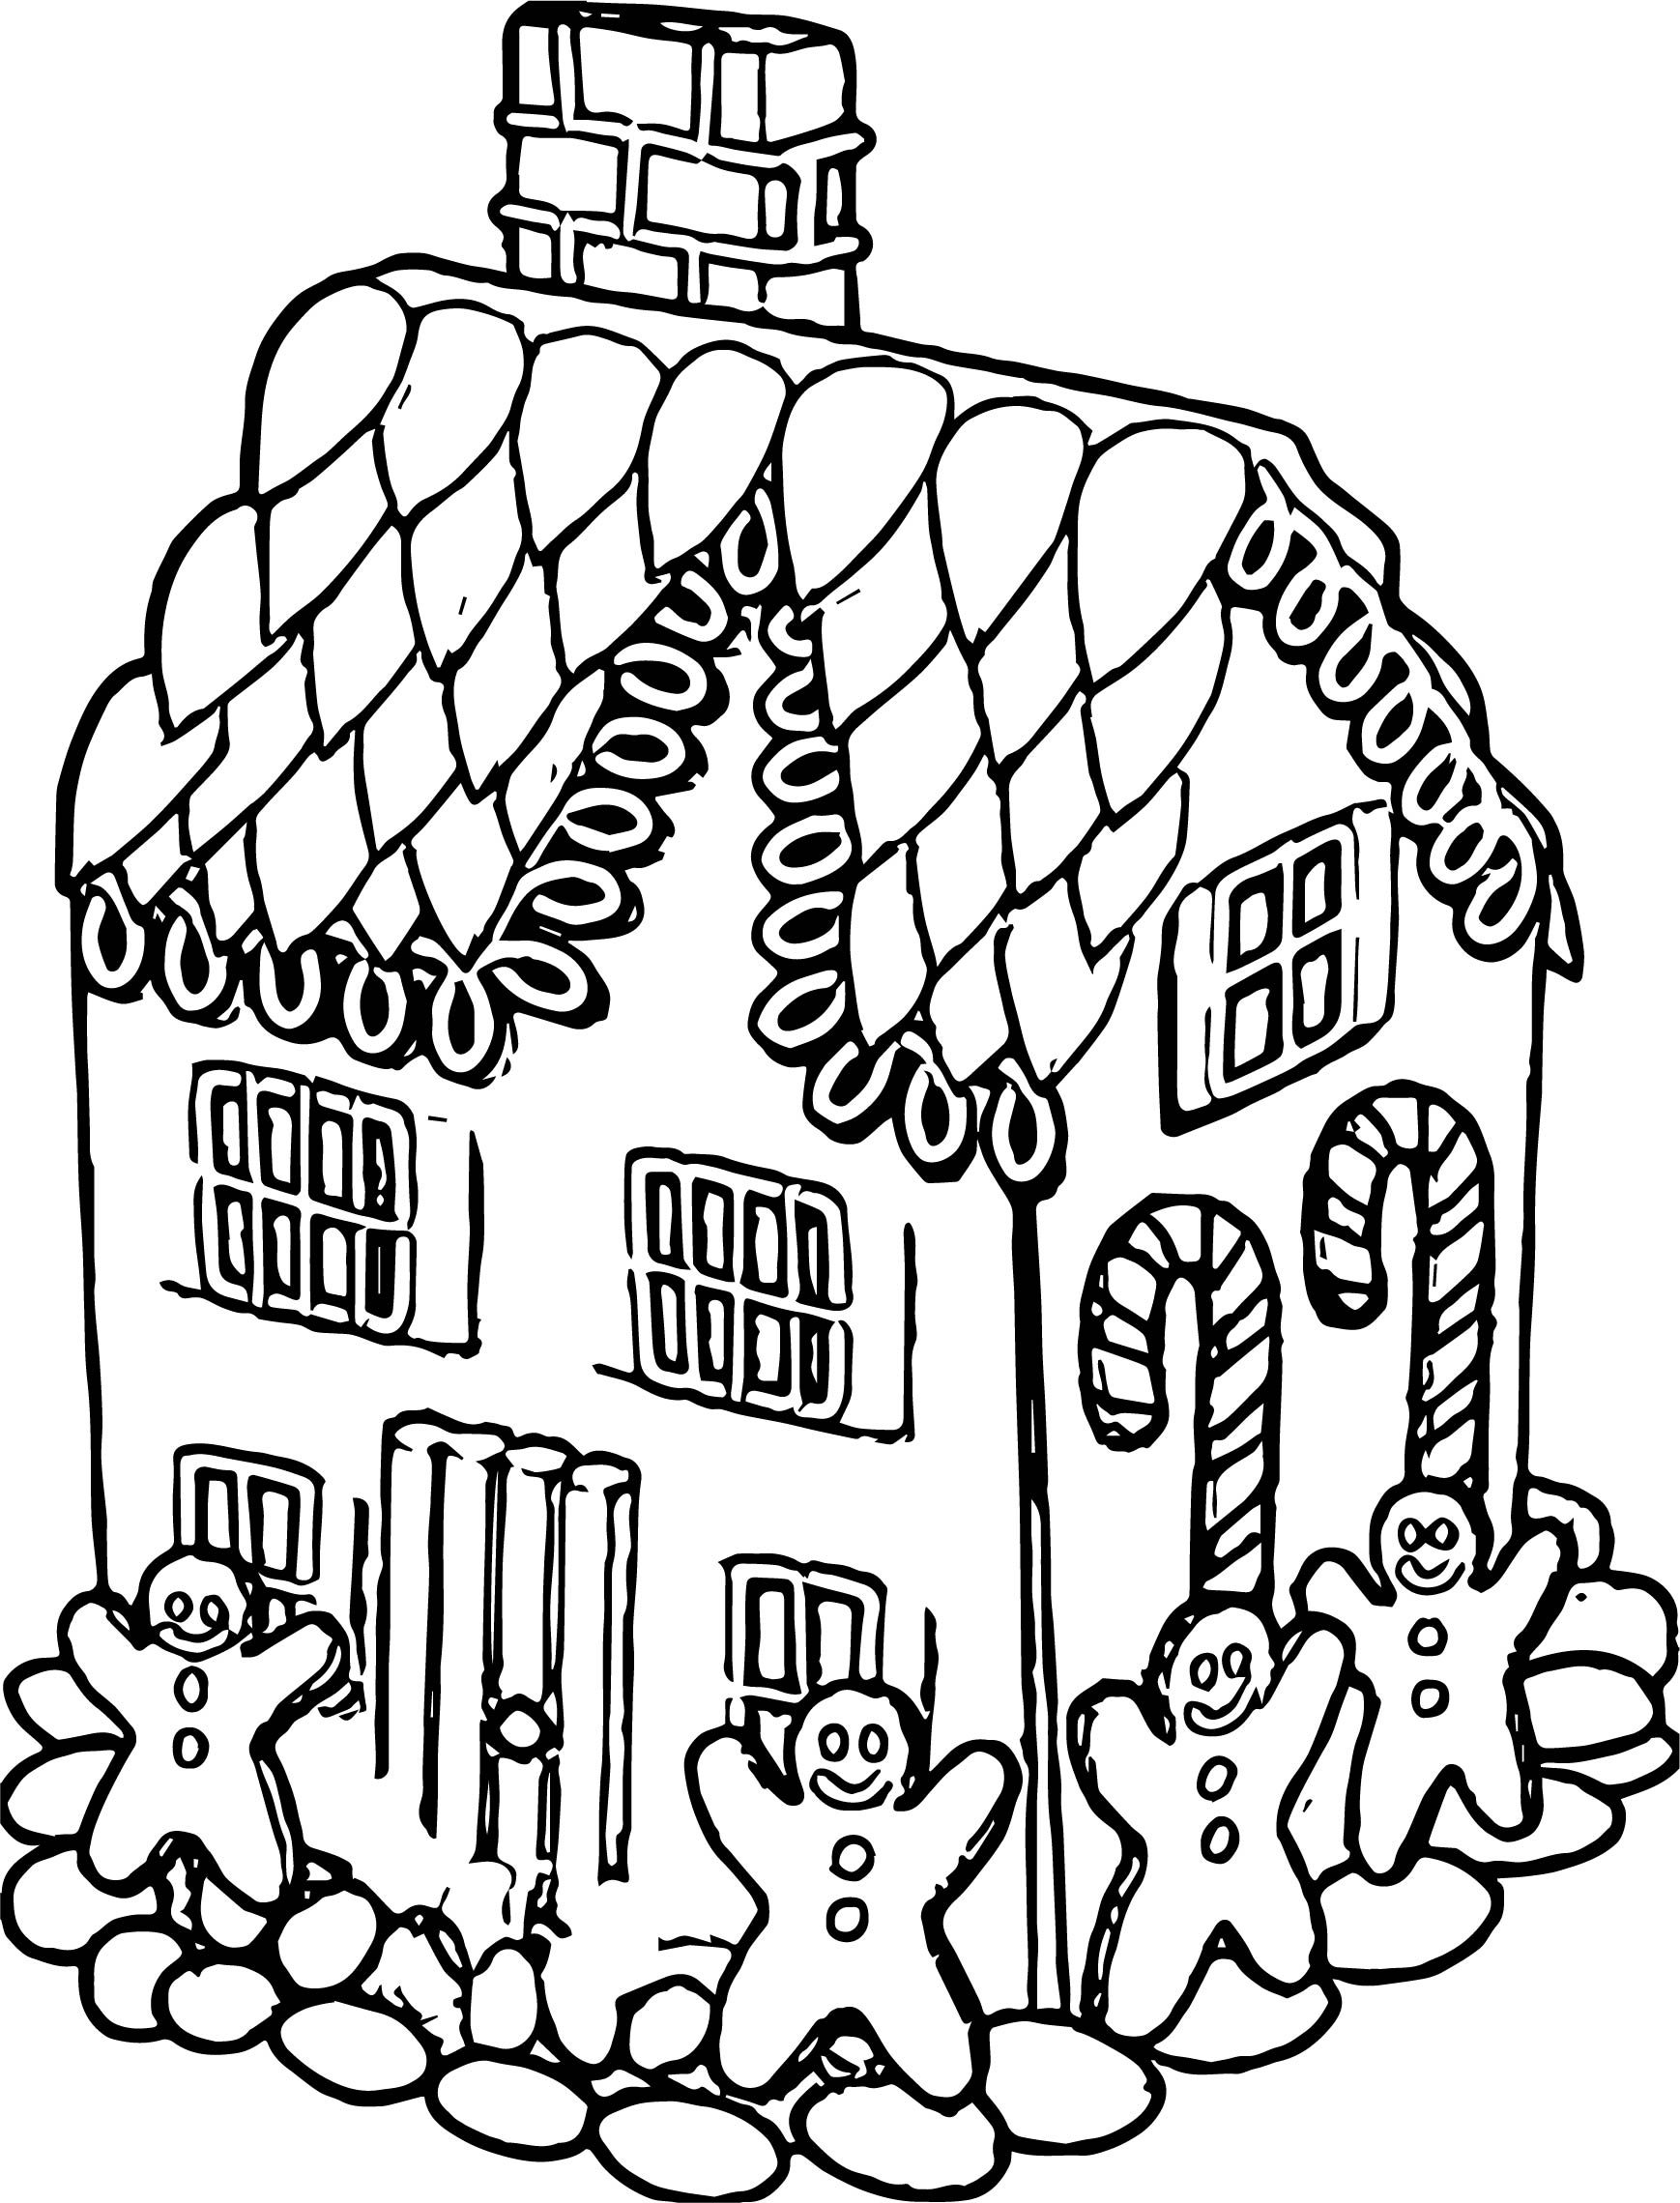 Ginger Bread House Gingerbread House Coloring Page